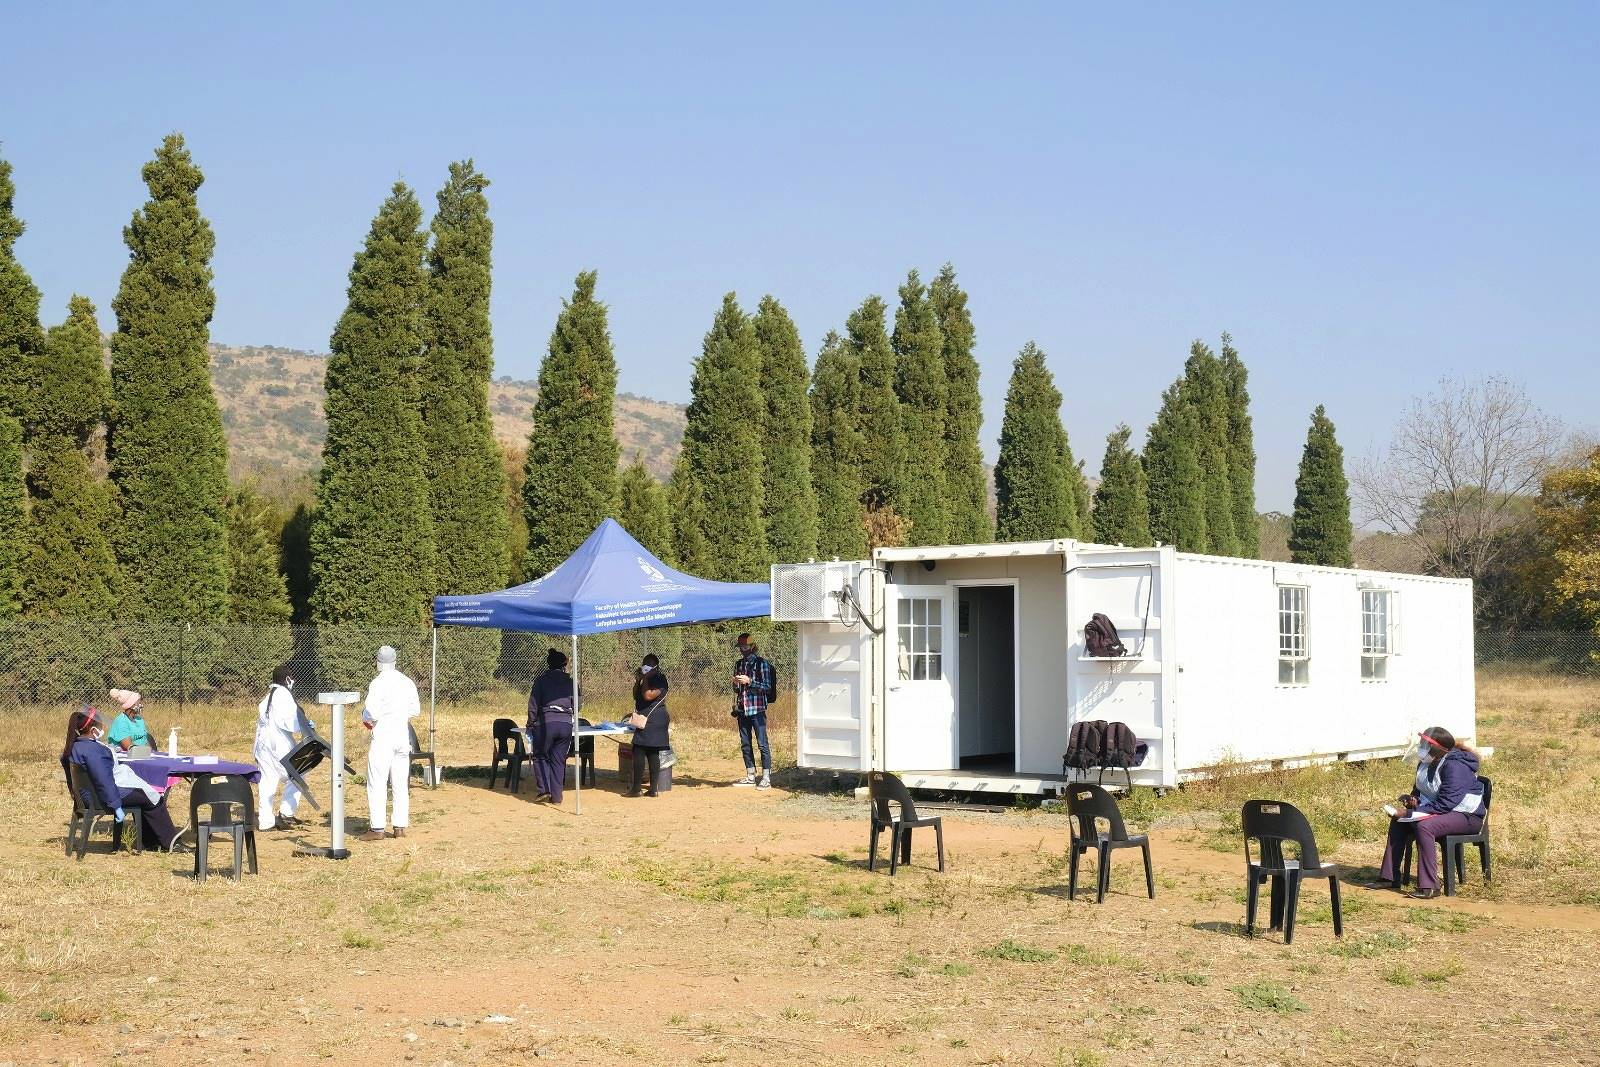 To reduce infection risk, the Melusi clinic is operating outside, with only one patient allowed inside the container at a time. Picture: Elna Schütz/Spotlight